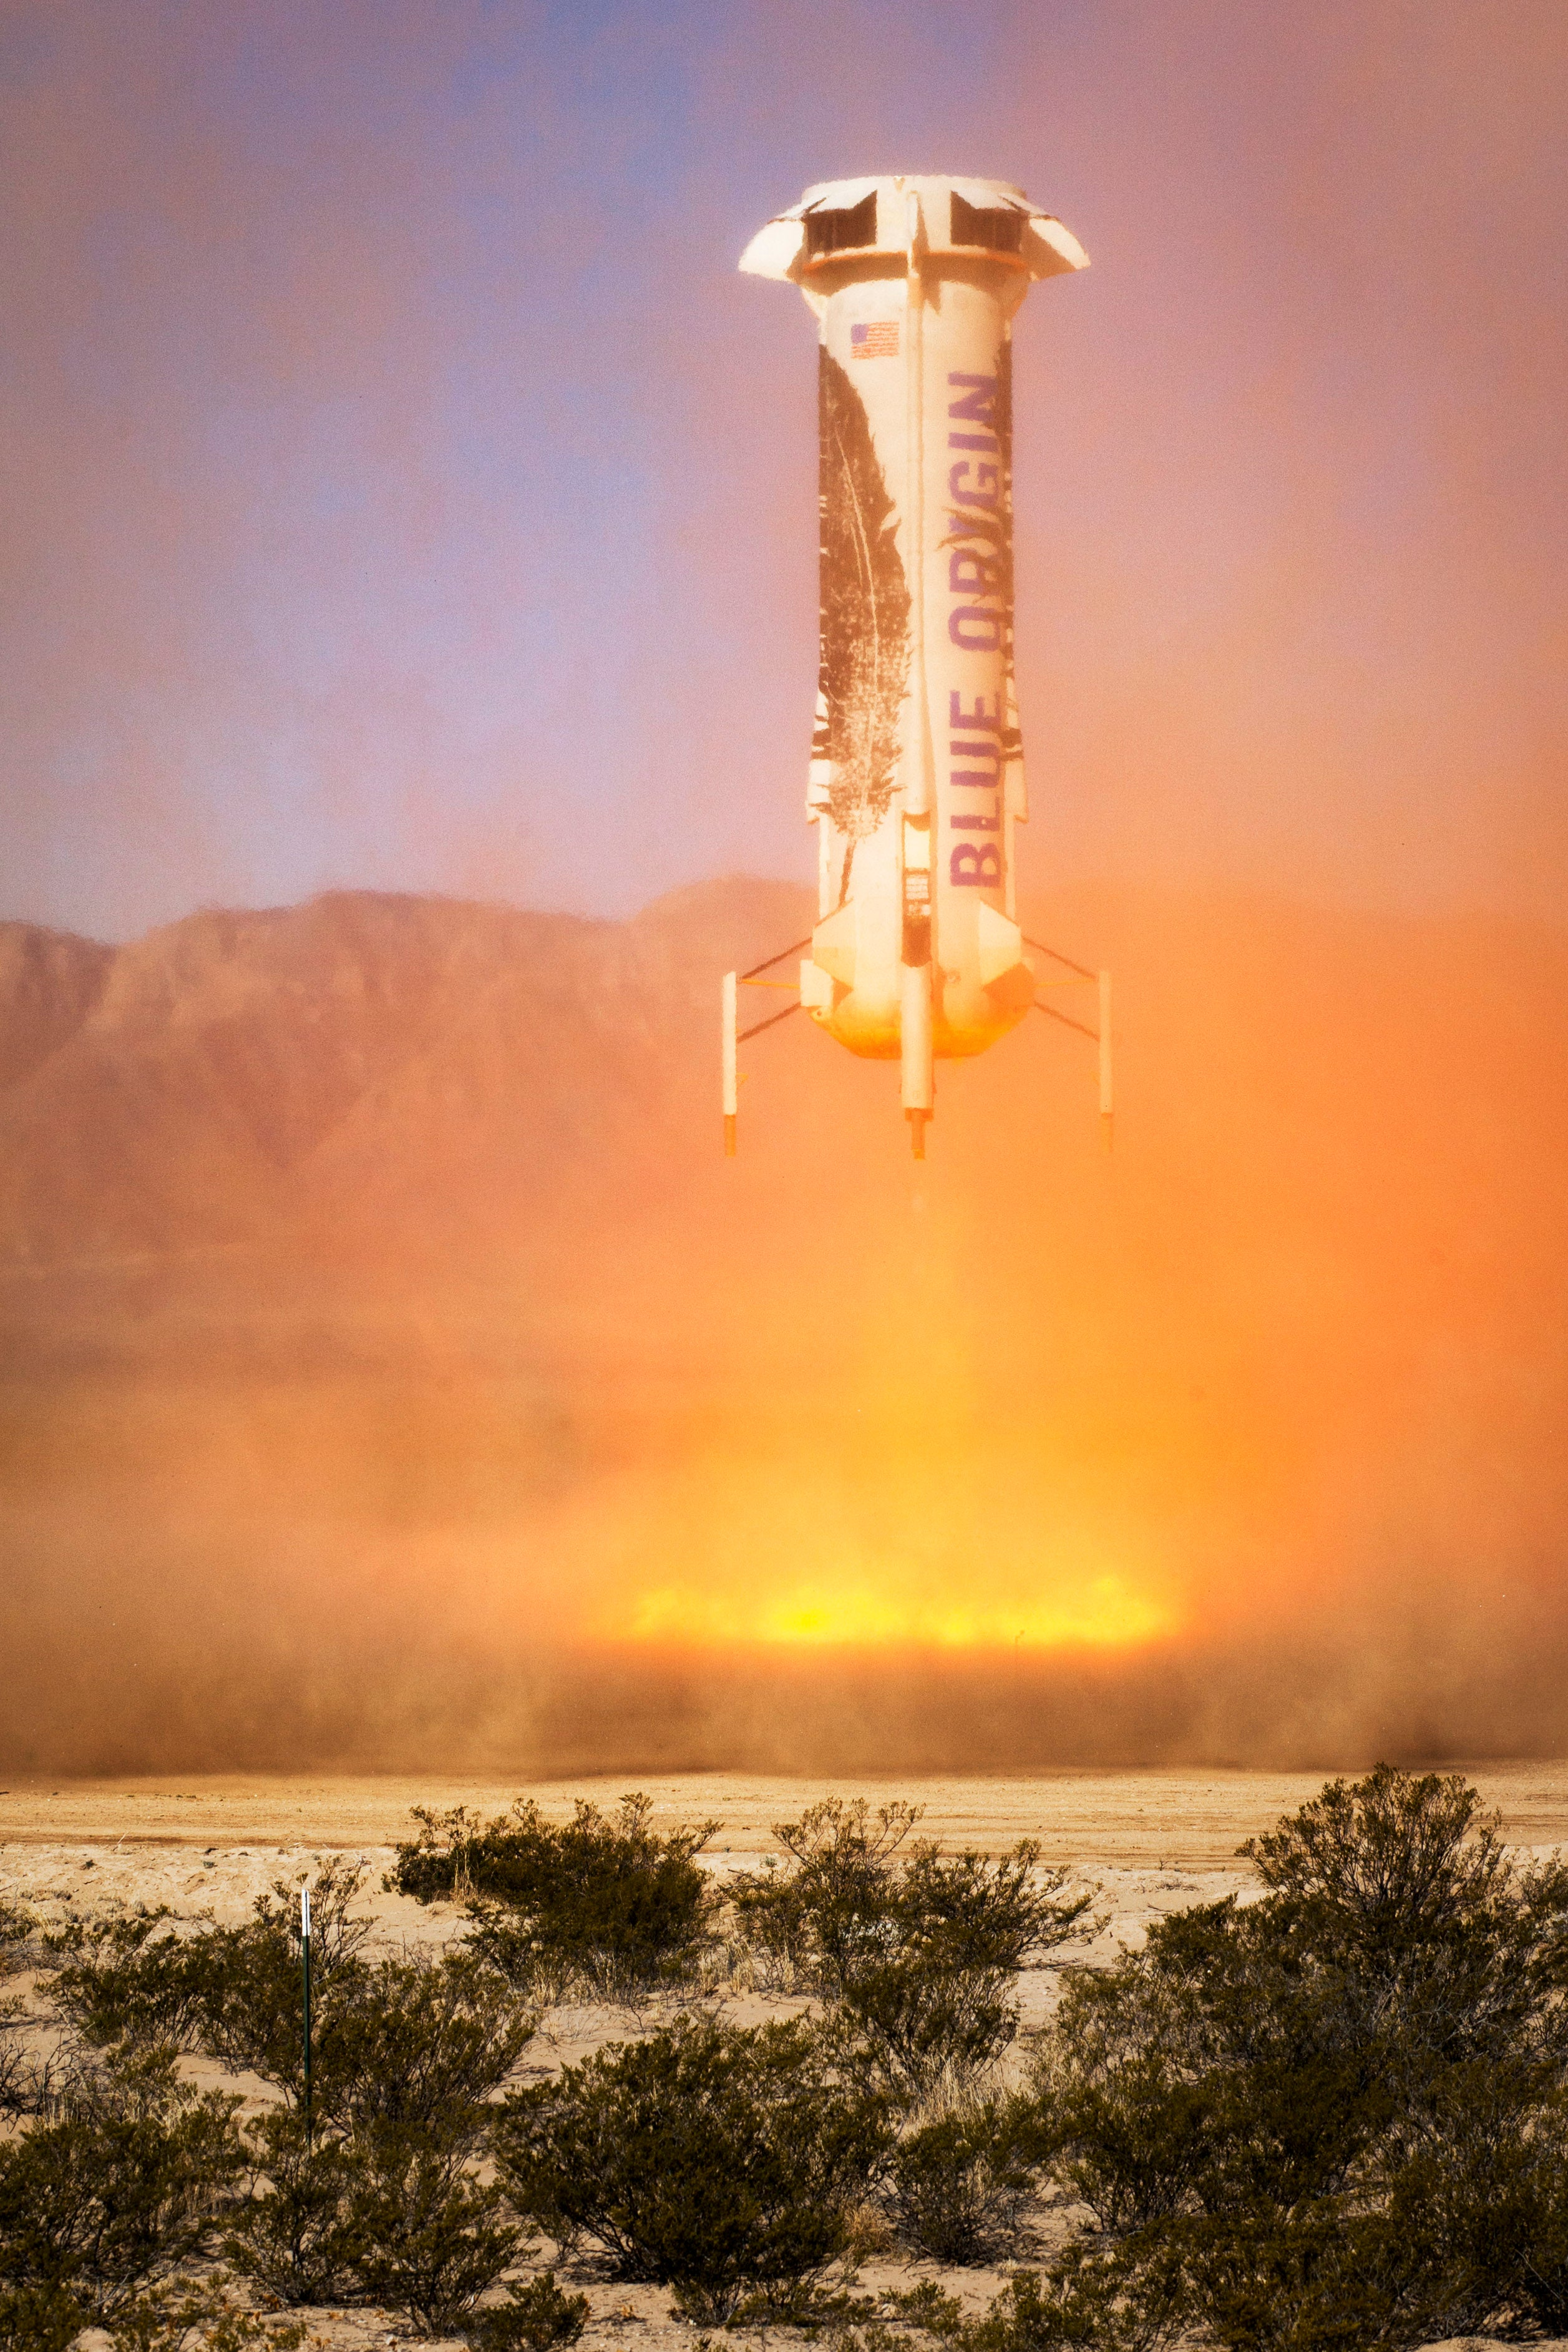 Here's Blue Origin's Rocket Coming In For Its Third Landing